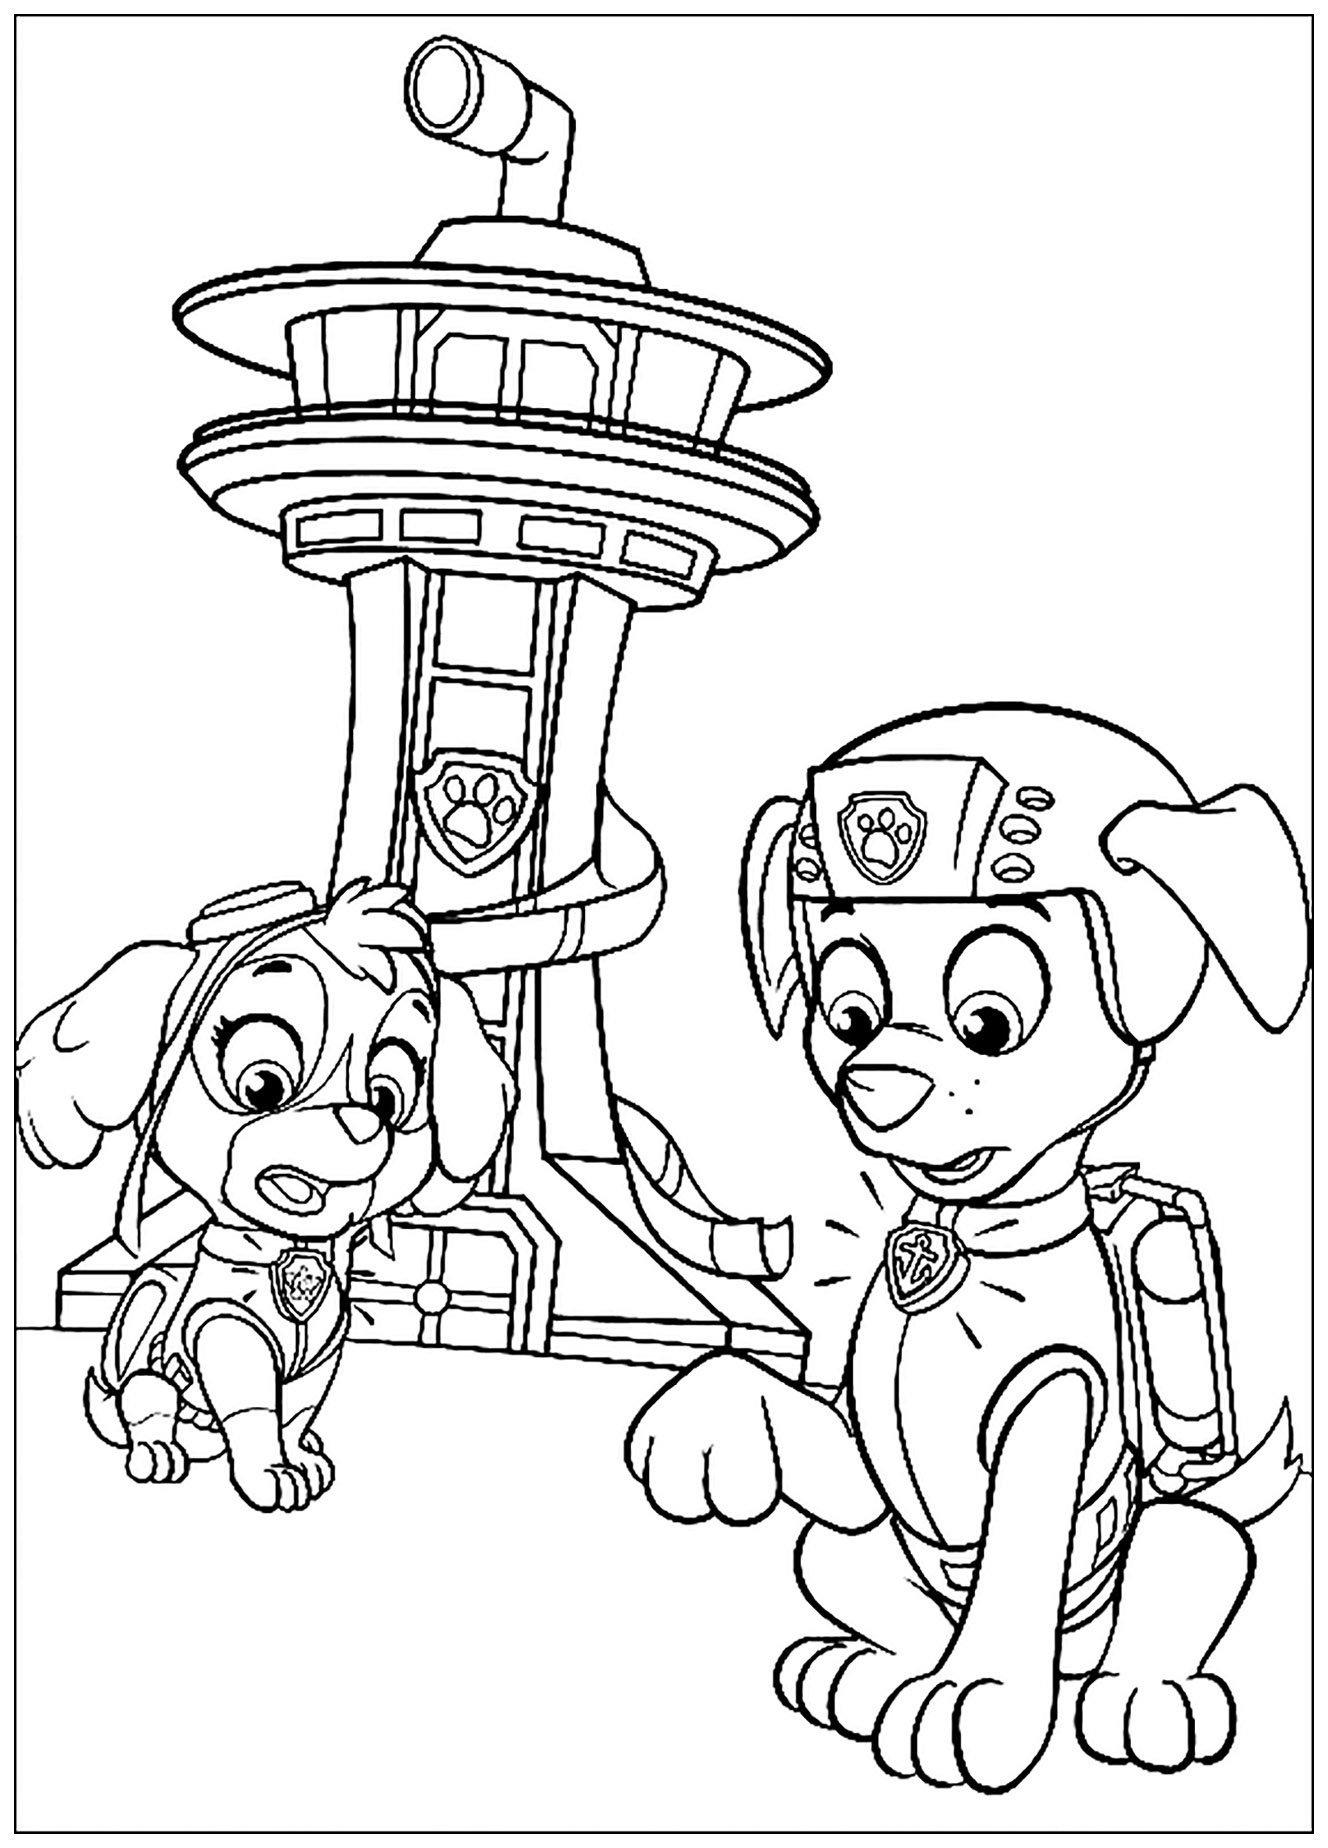 paw patrol coloring pages get this paw patrol preschool coloring pages to print patrol coloring paw pages